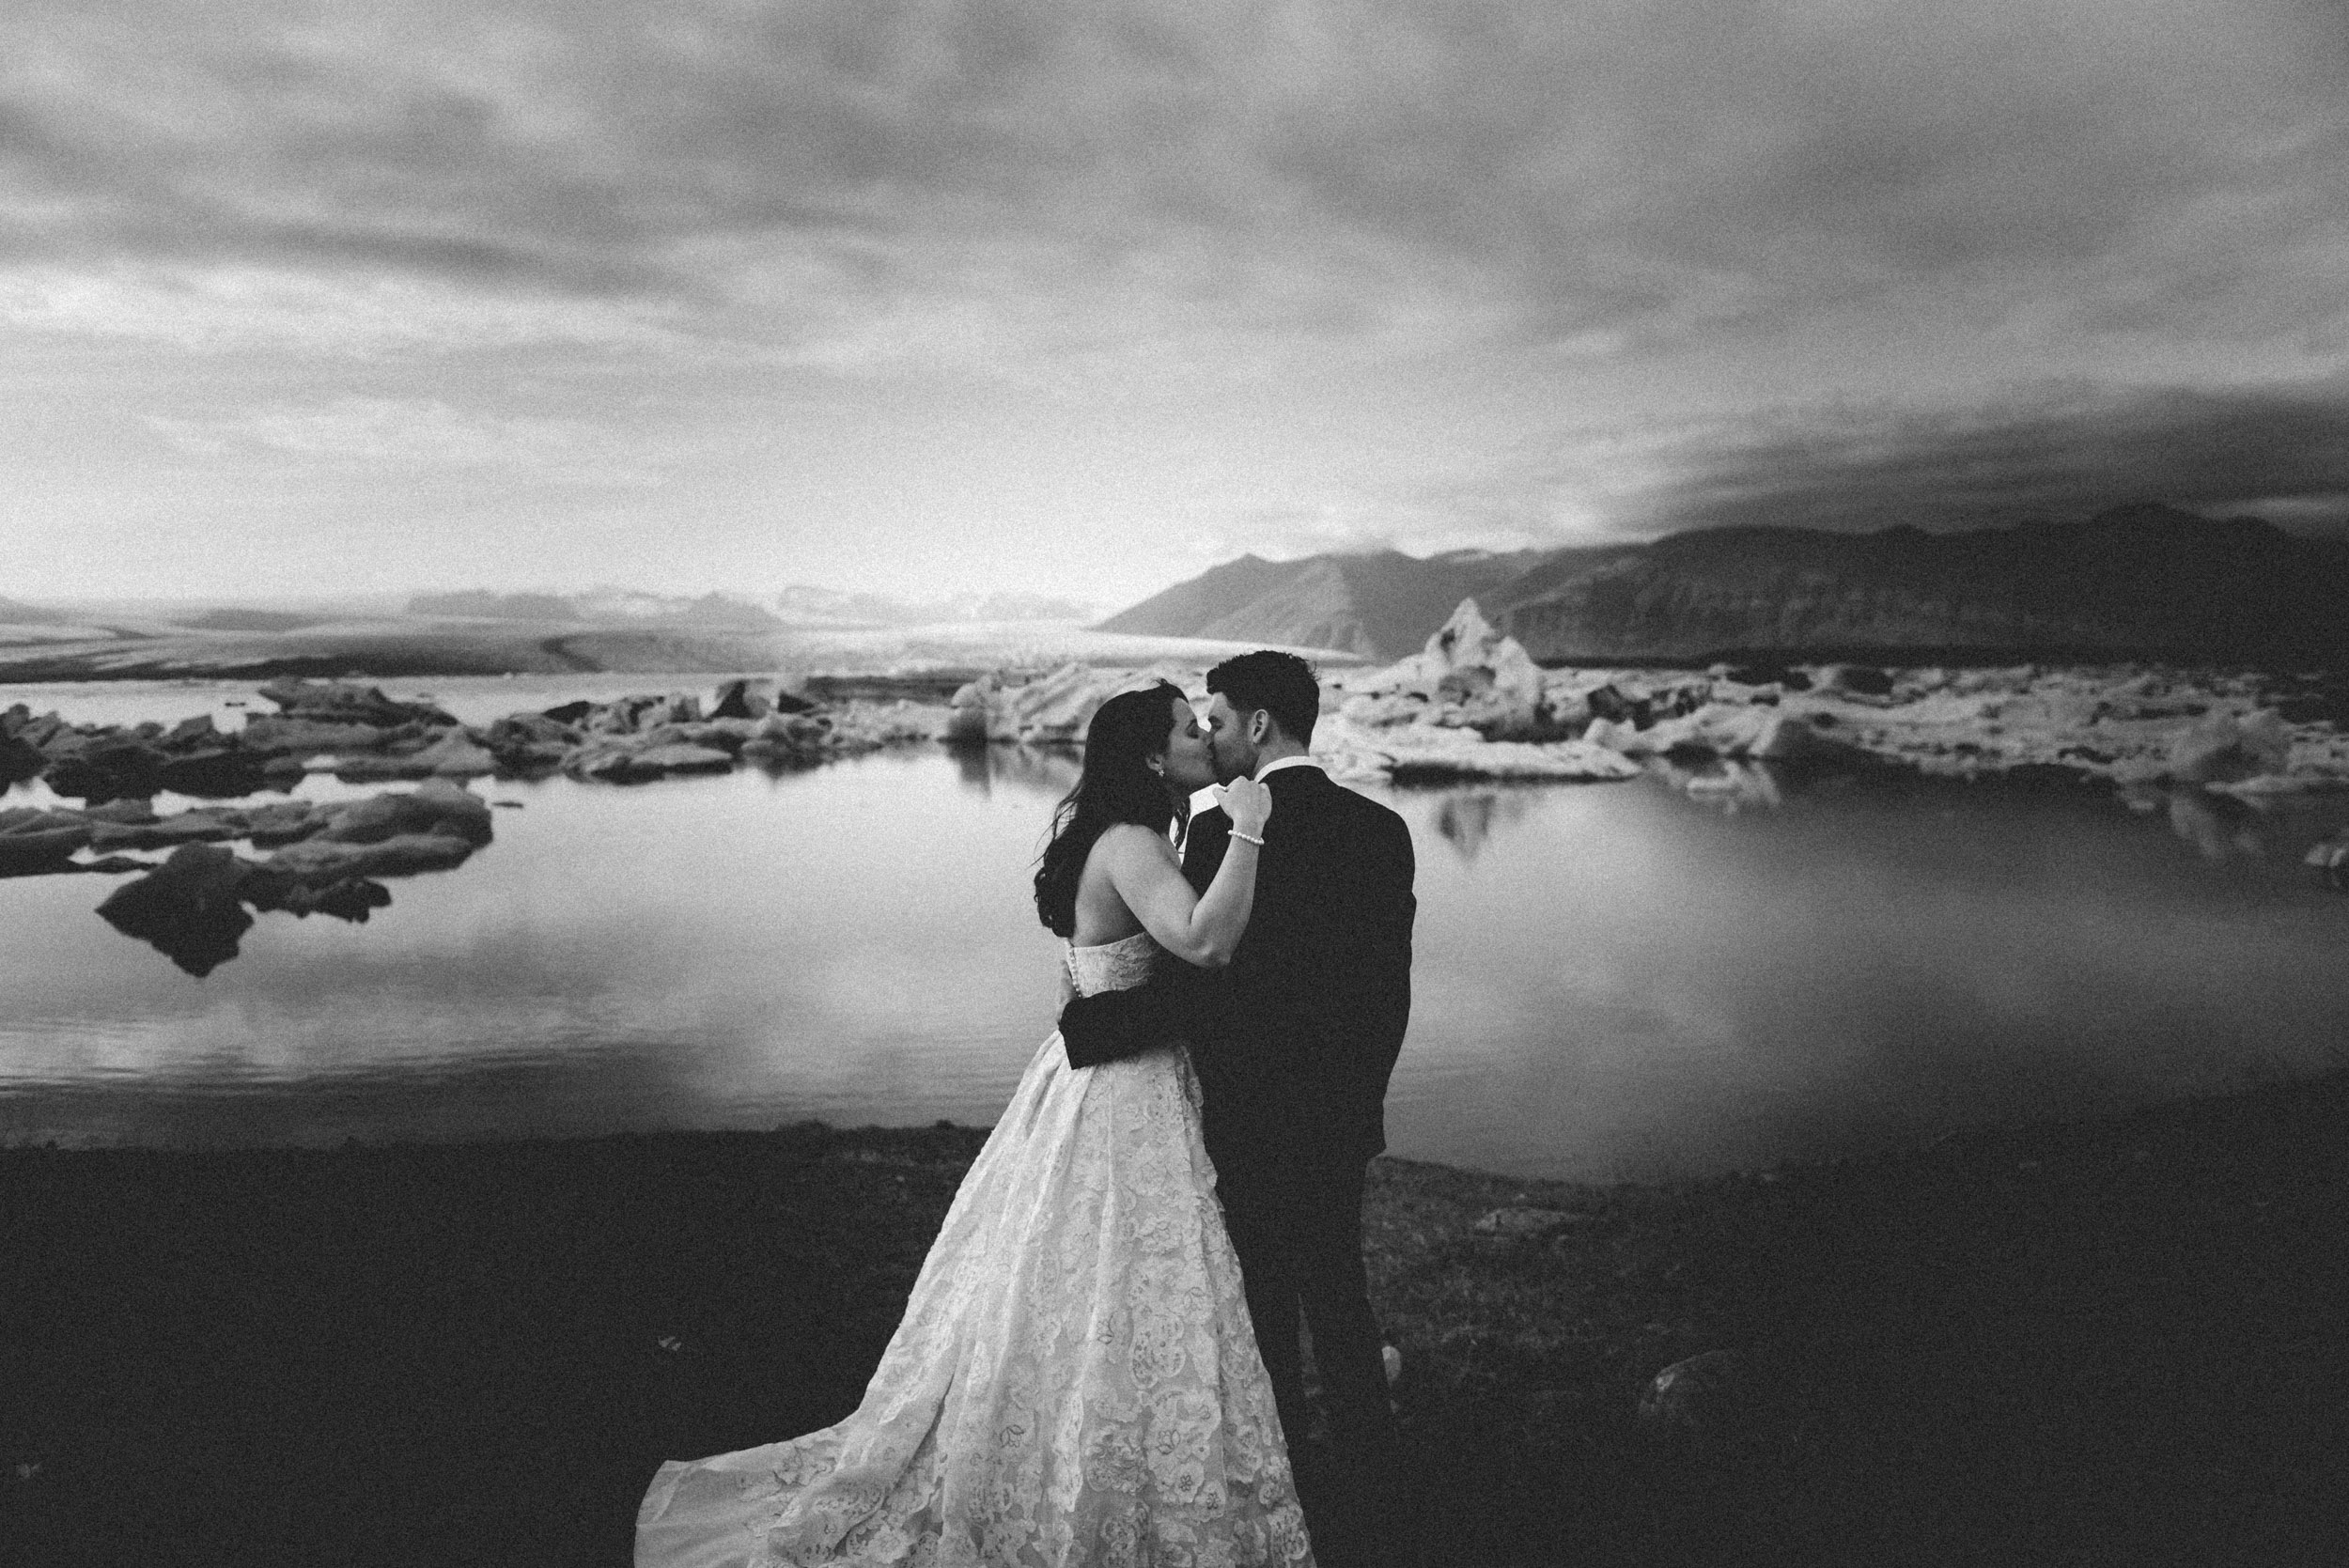 Destination Elopements Starting @ $4125 - Day Of CoverageSome Day Before or Day After CoverageImages Delivered Via Digital DownloadComplimentary Online Gallery For Six Months